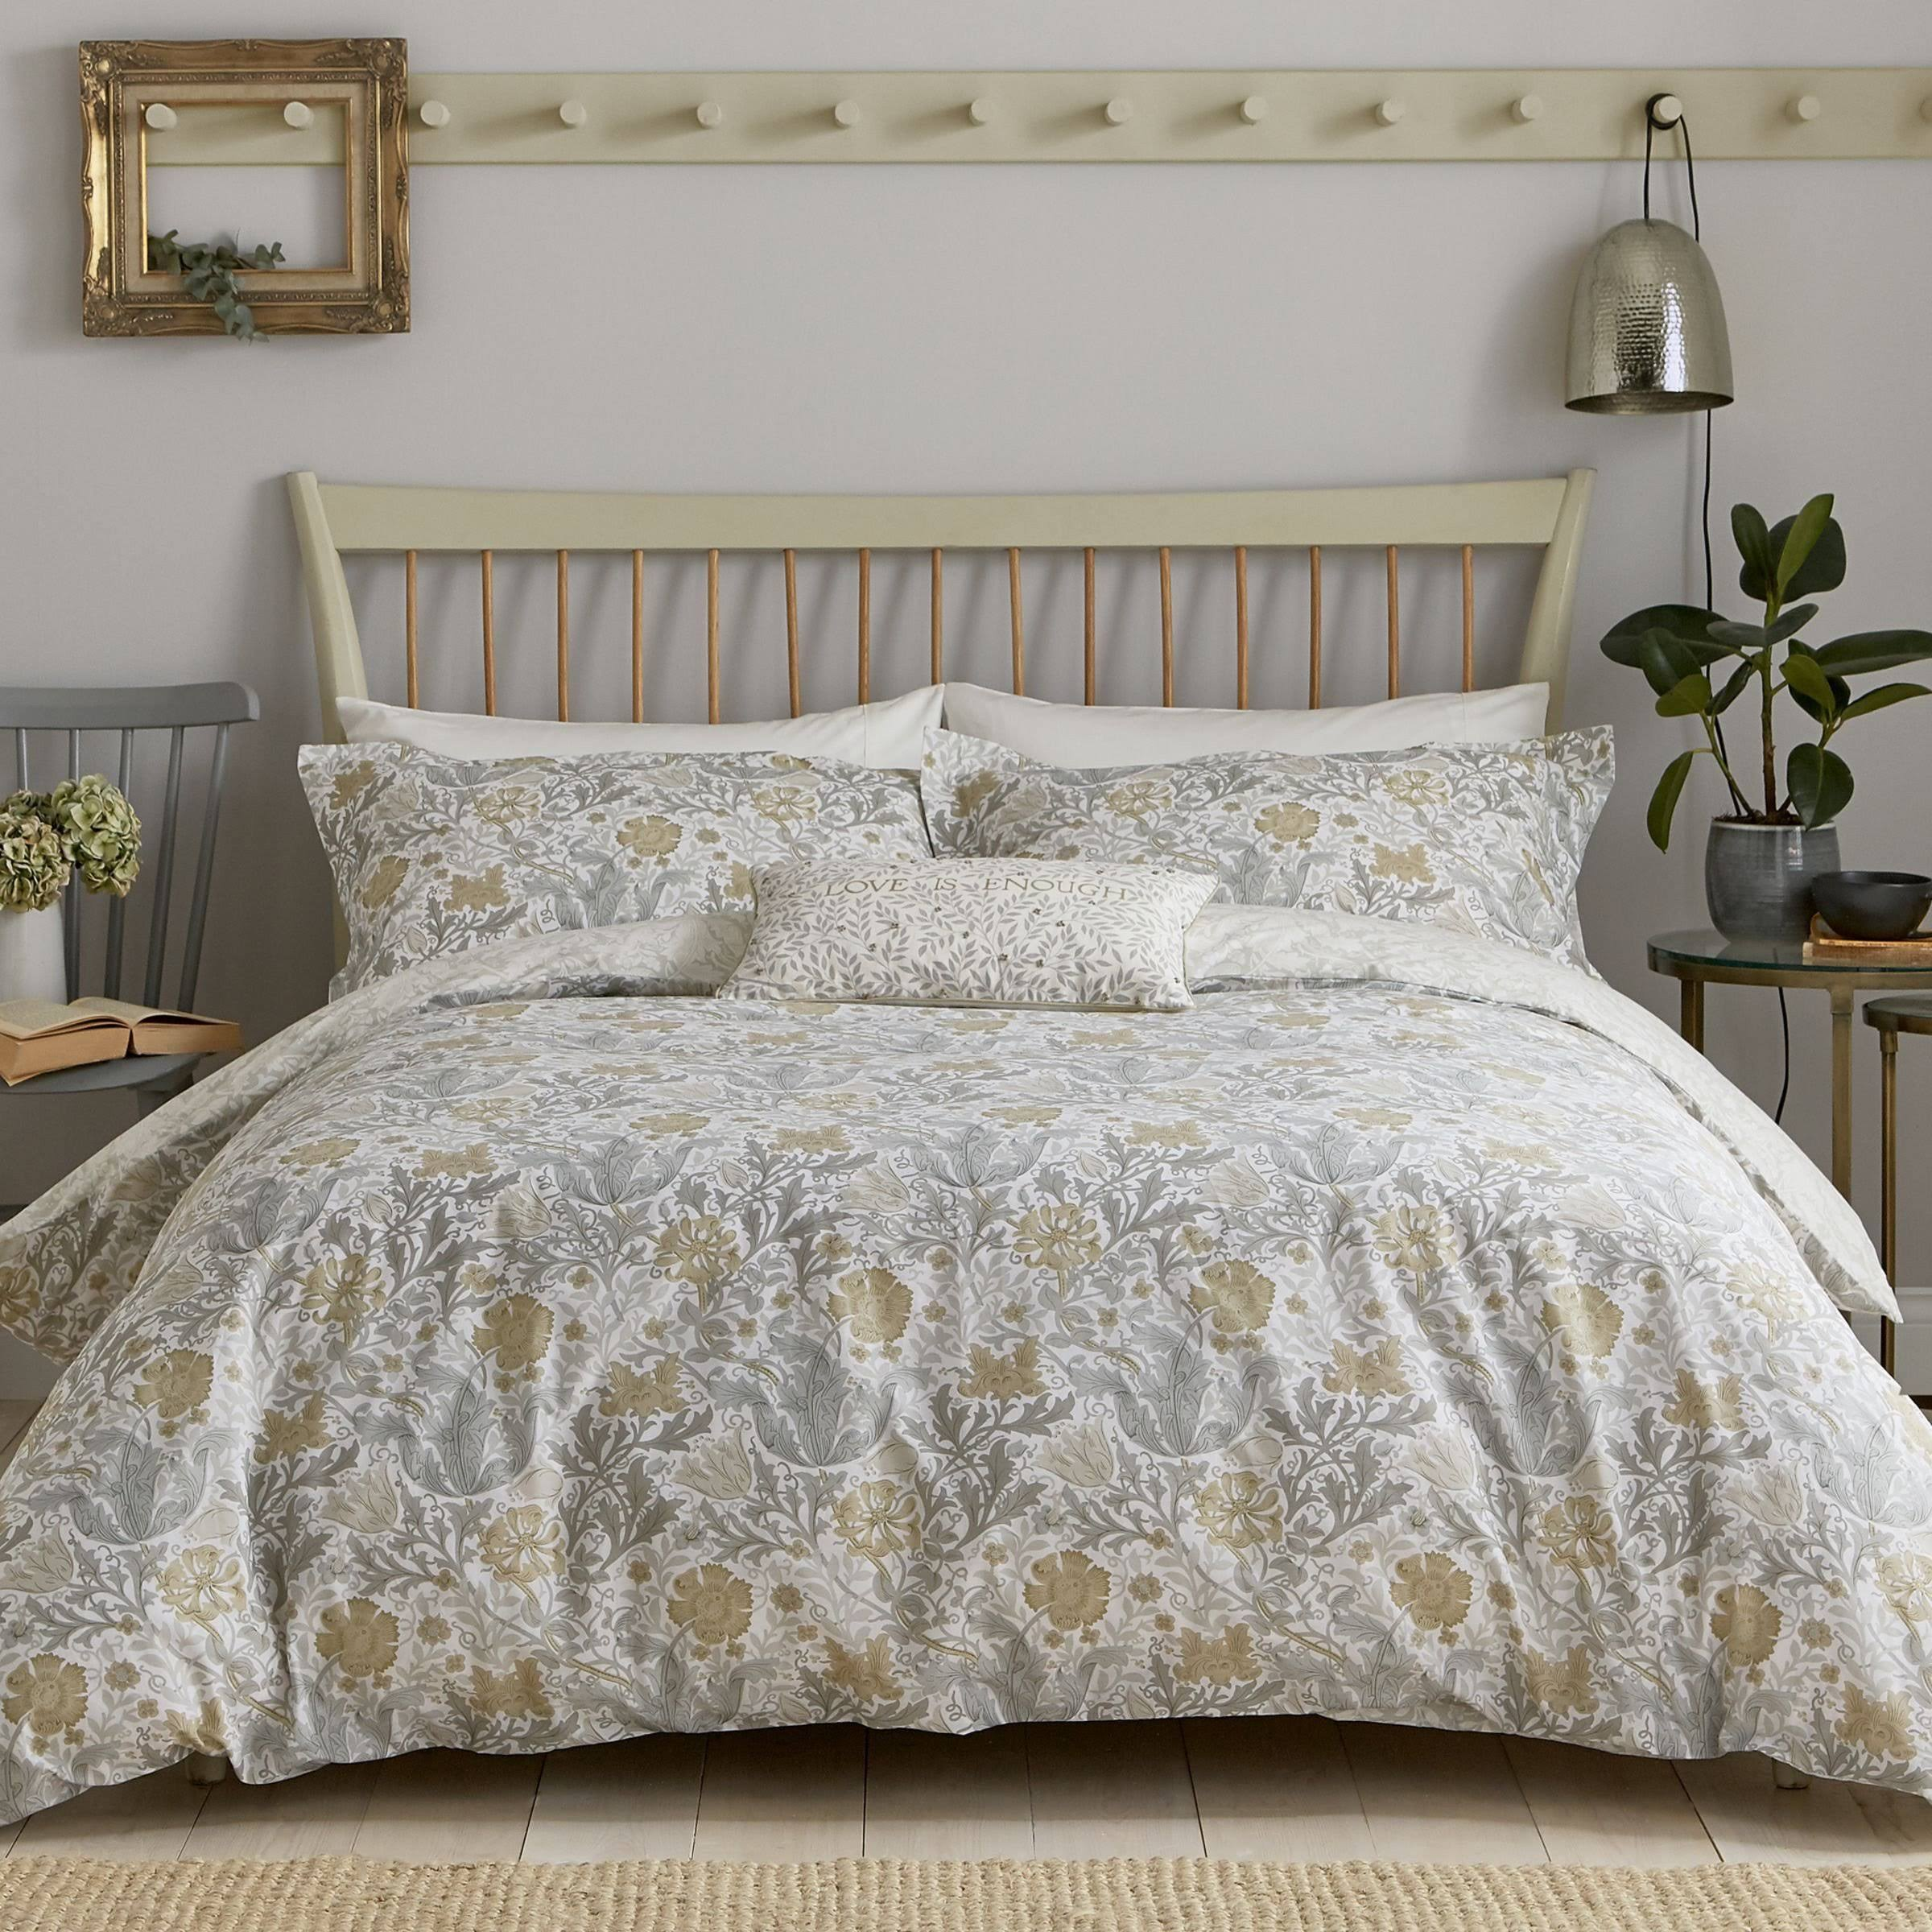 Morris & Co Compton Duvet Set